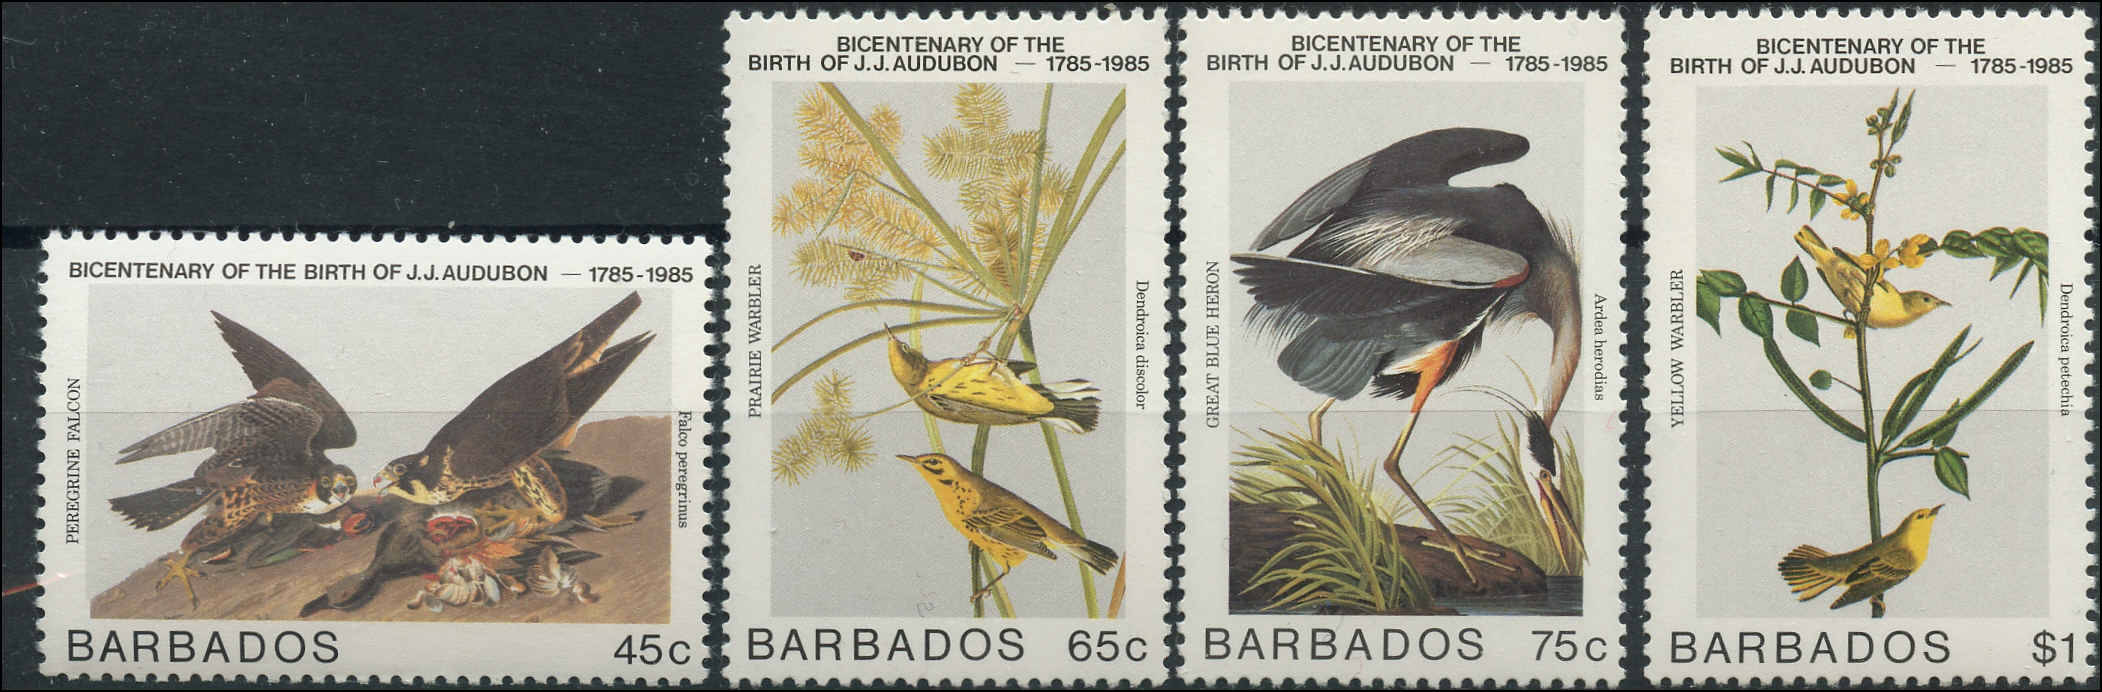 Barbados Stamp, Scott #665-668, VF, MNH